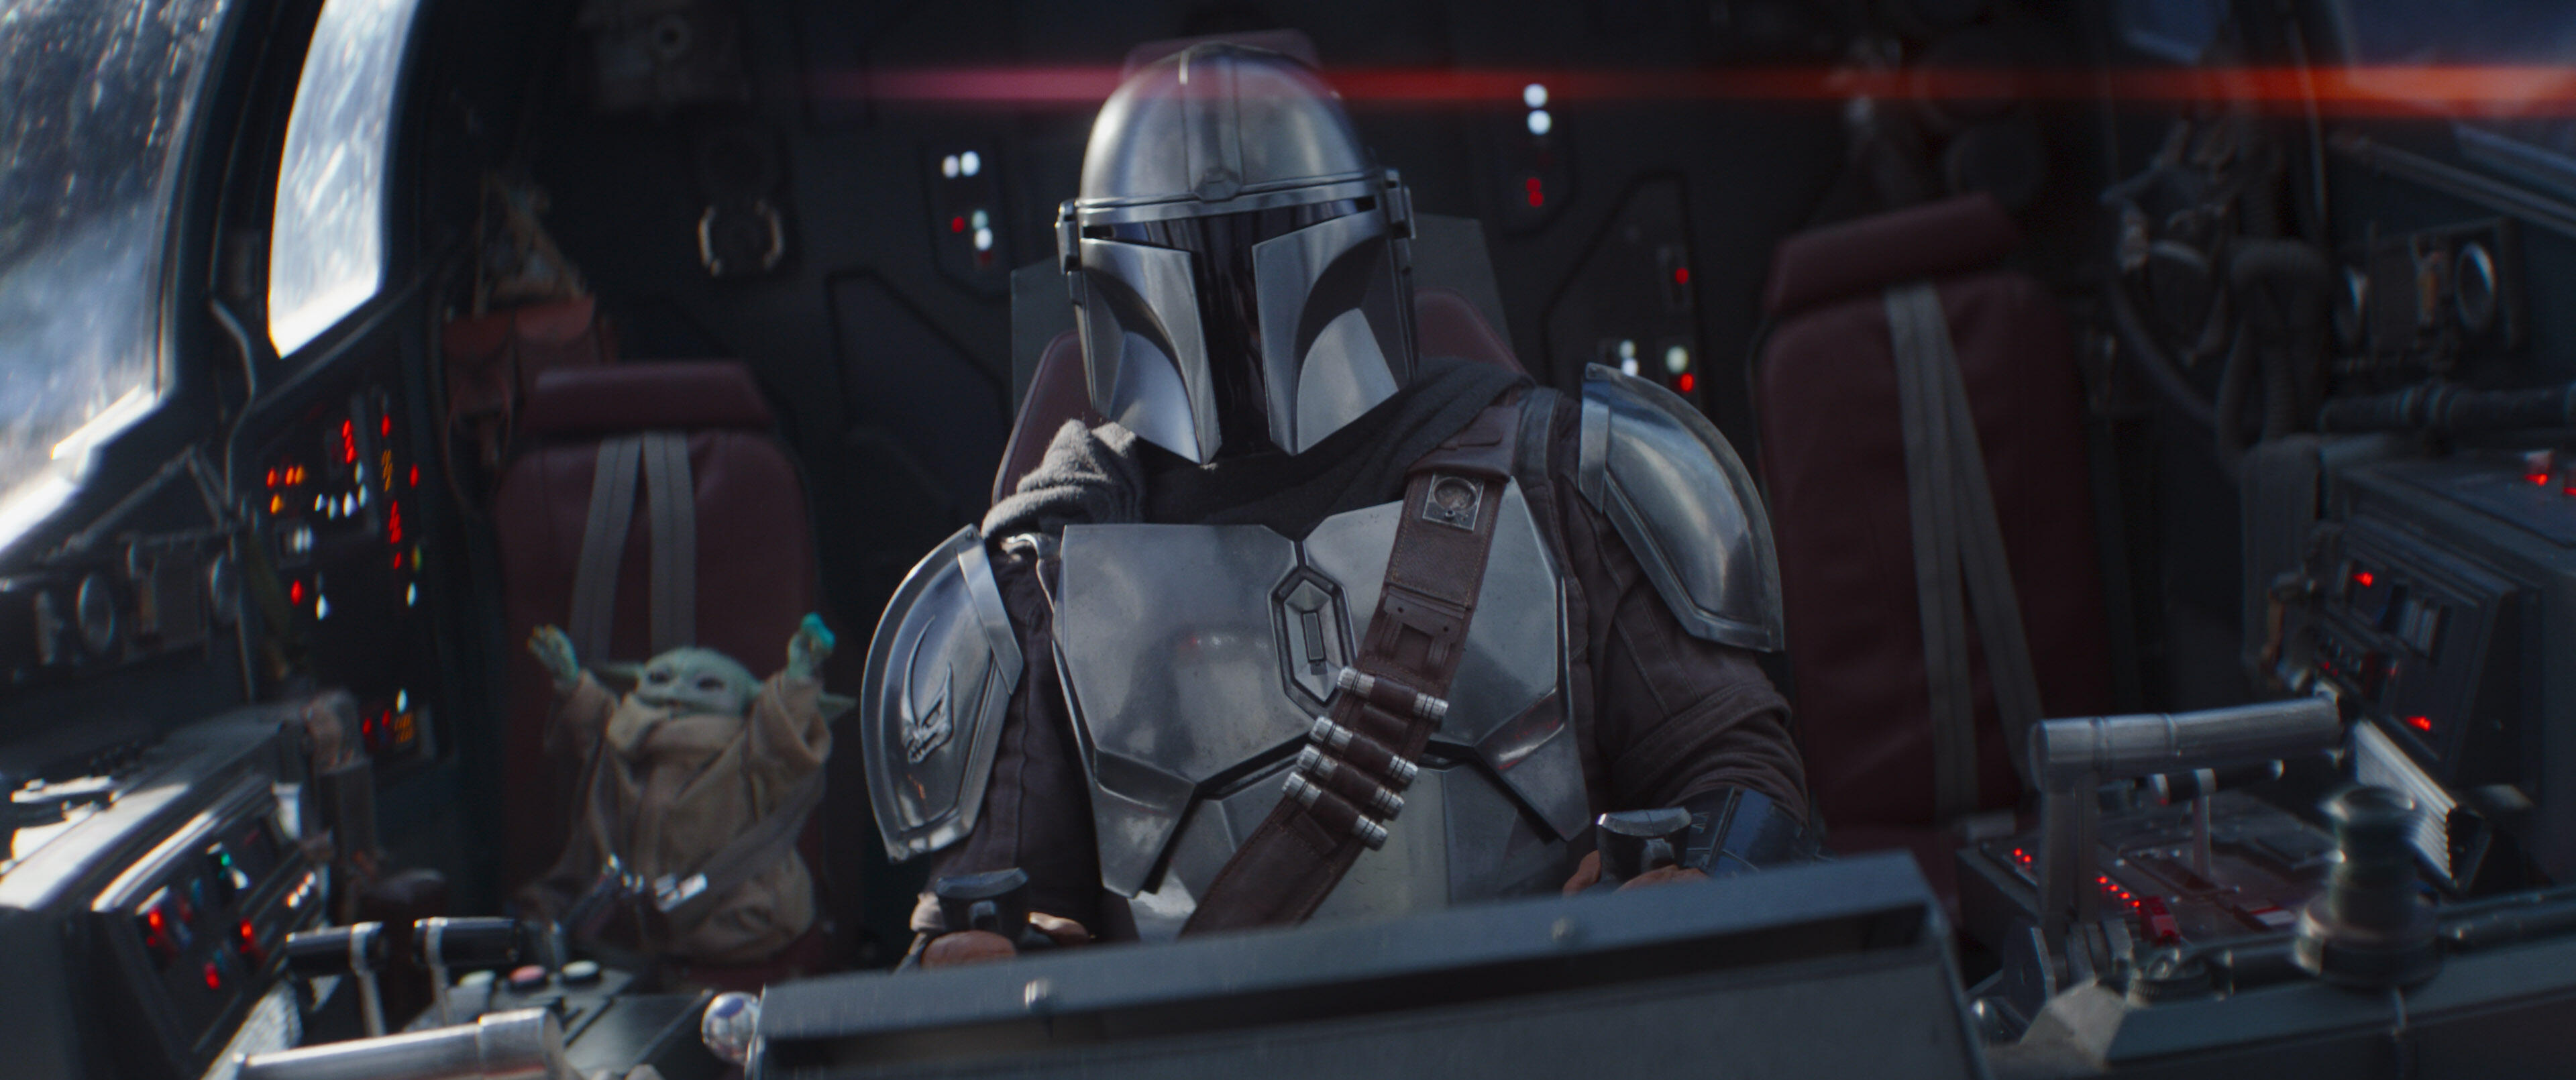 The Mandalorian pilots a spacecraft, with Baby Yoda sitting nearby.